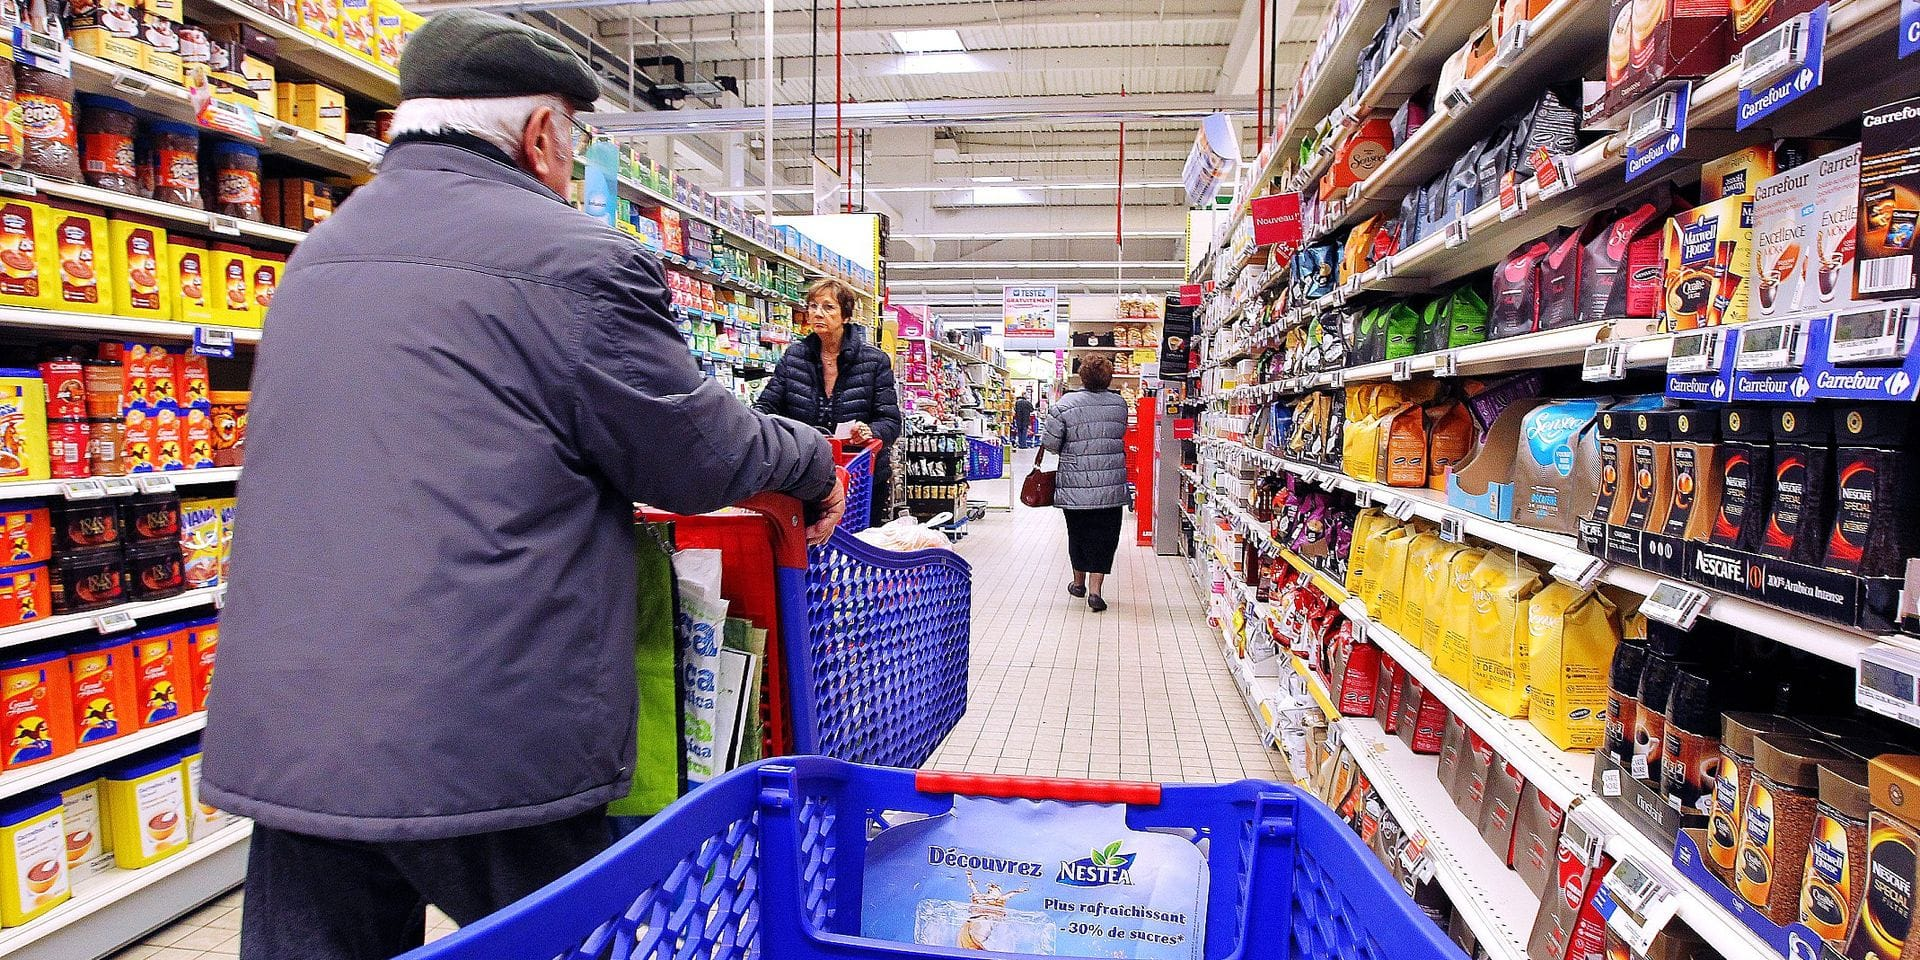 Illustration carrefour consommation